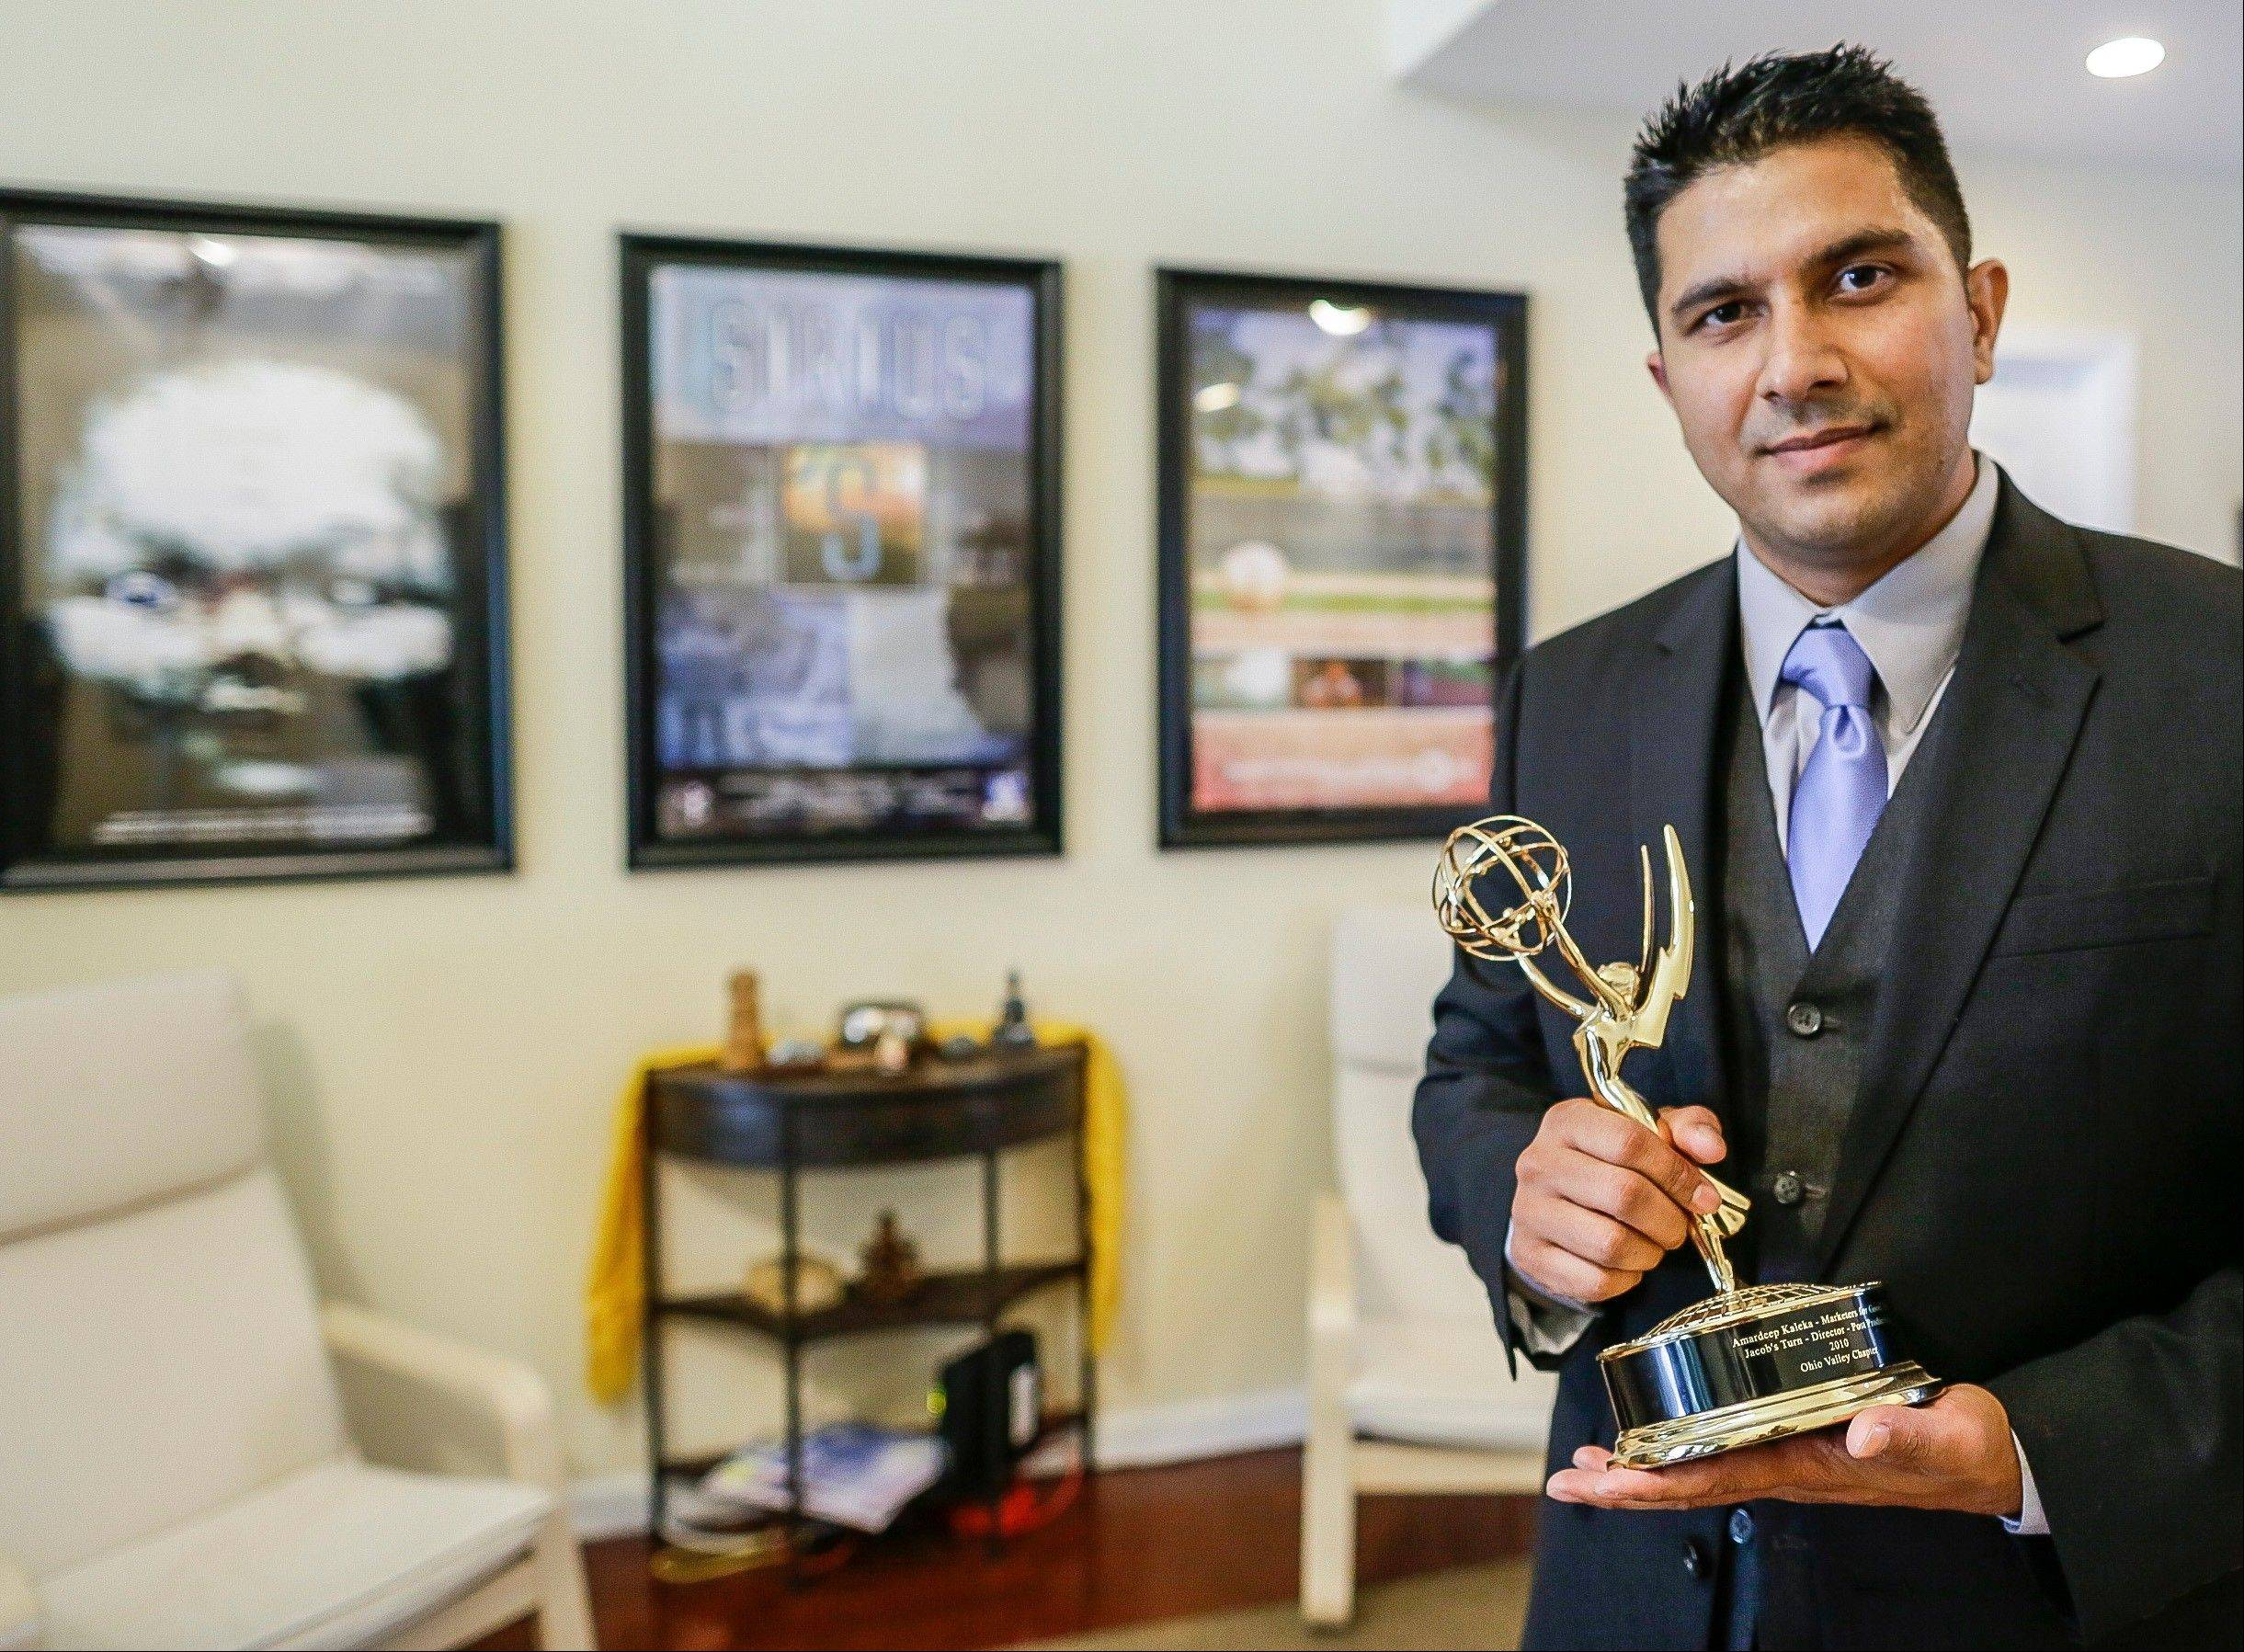 In this Thursday, Oct. 10, 2013 photo, film director and producer Amardeep Kaleka poses for a photo at Neverending Light, his Emmy Award winning film and television production company in Los Angeles. Kaleka, whose father Satwant Singh Kaleka, the president of the Sikh Temple of Wisconsin, was slain at the Oak Creek temple shooting in Milwaukee suburb in 2012, plans to challenge Rep. Paul Ryan in next year�s congressional election. Kaleka says he�ll file paperwork Wednesday to form an exploratory congressional committee. The 35-year-old Democrat plans to announce his candidacy formally next month.